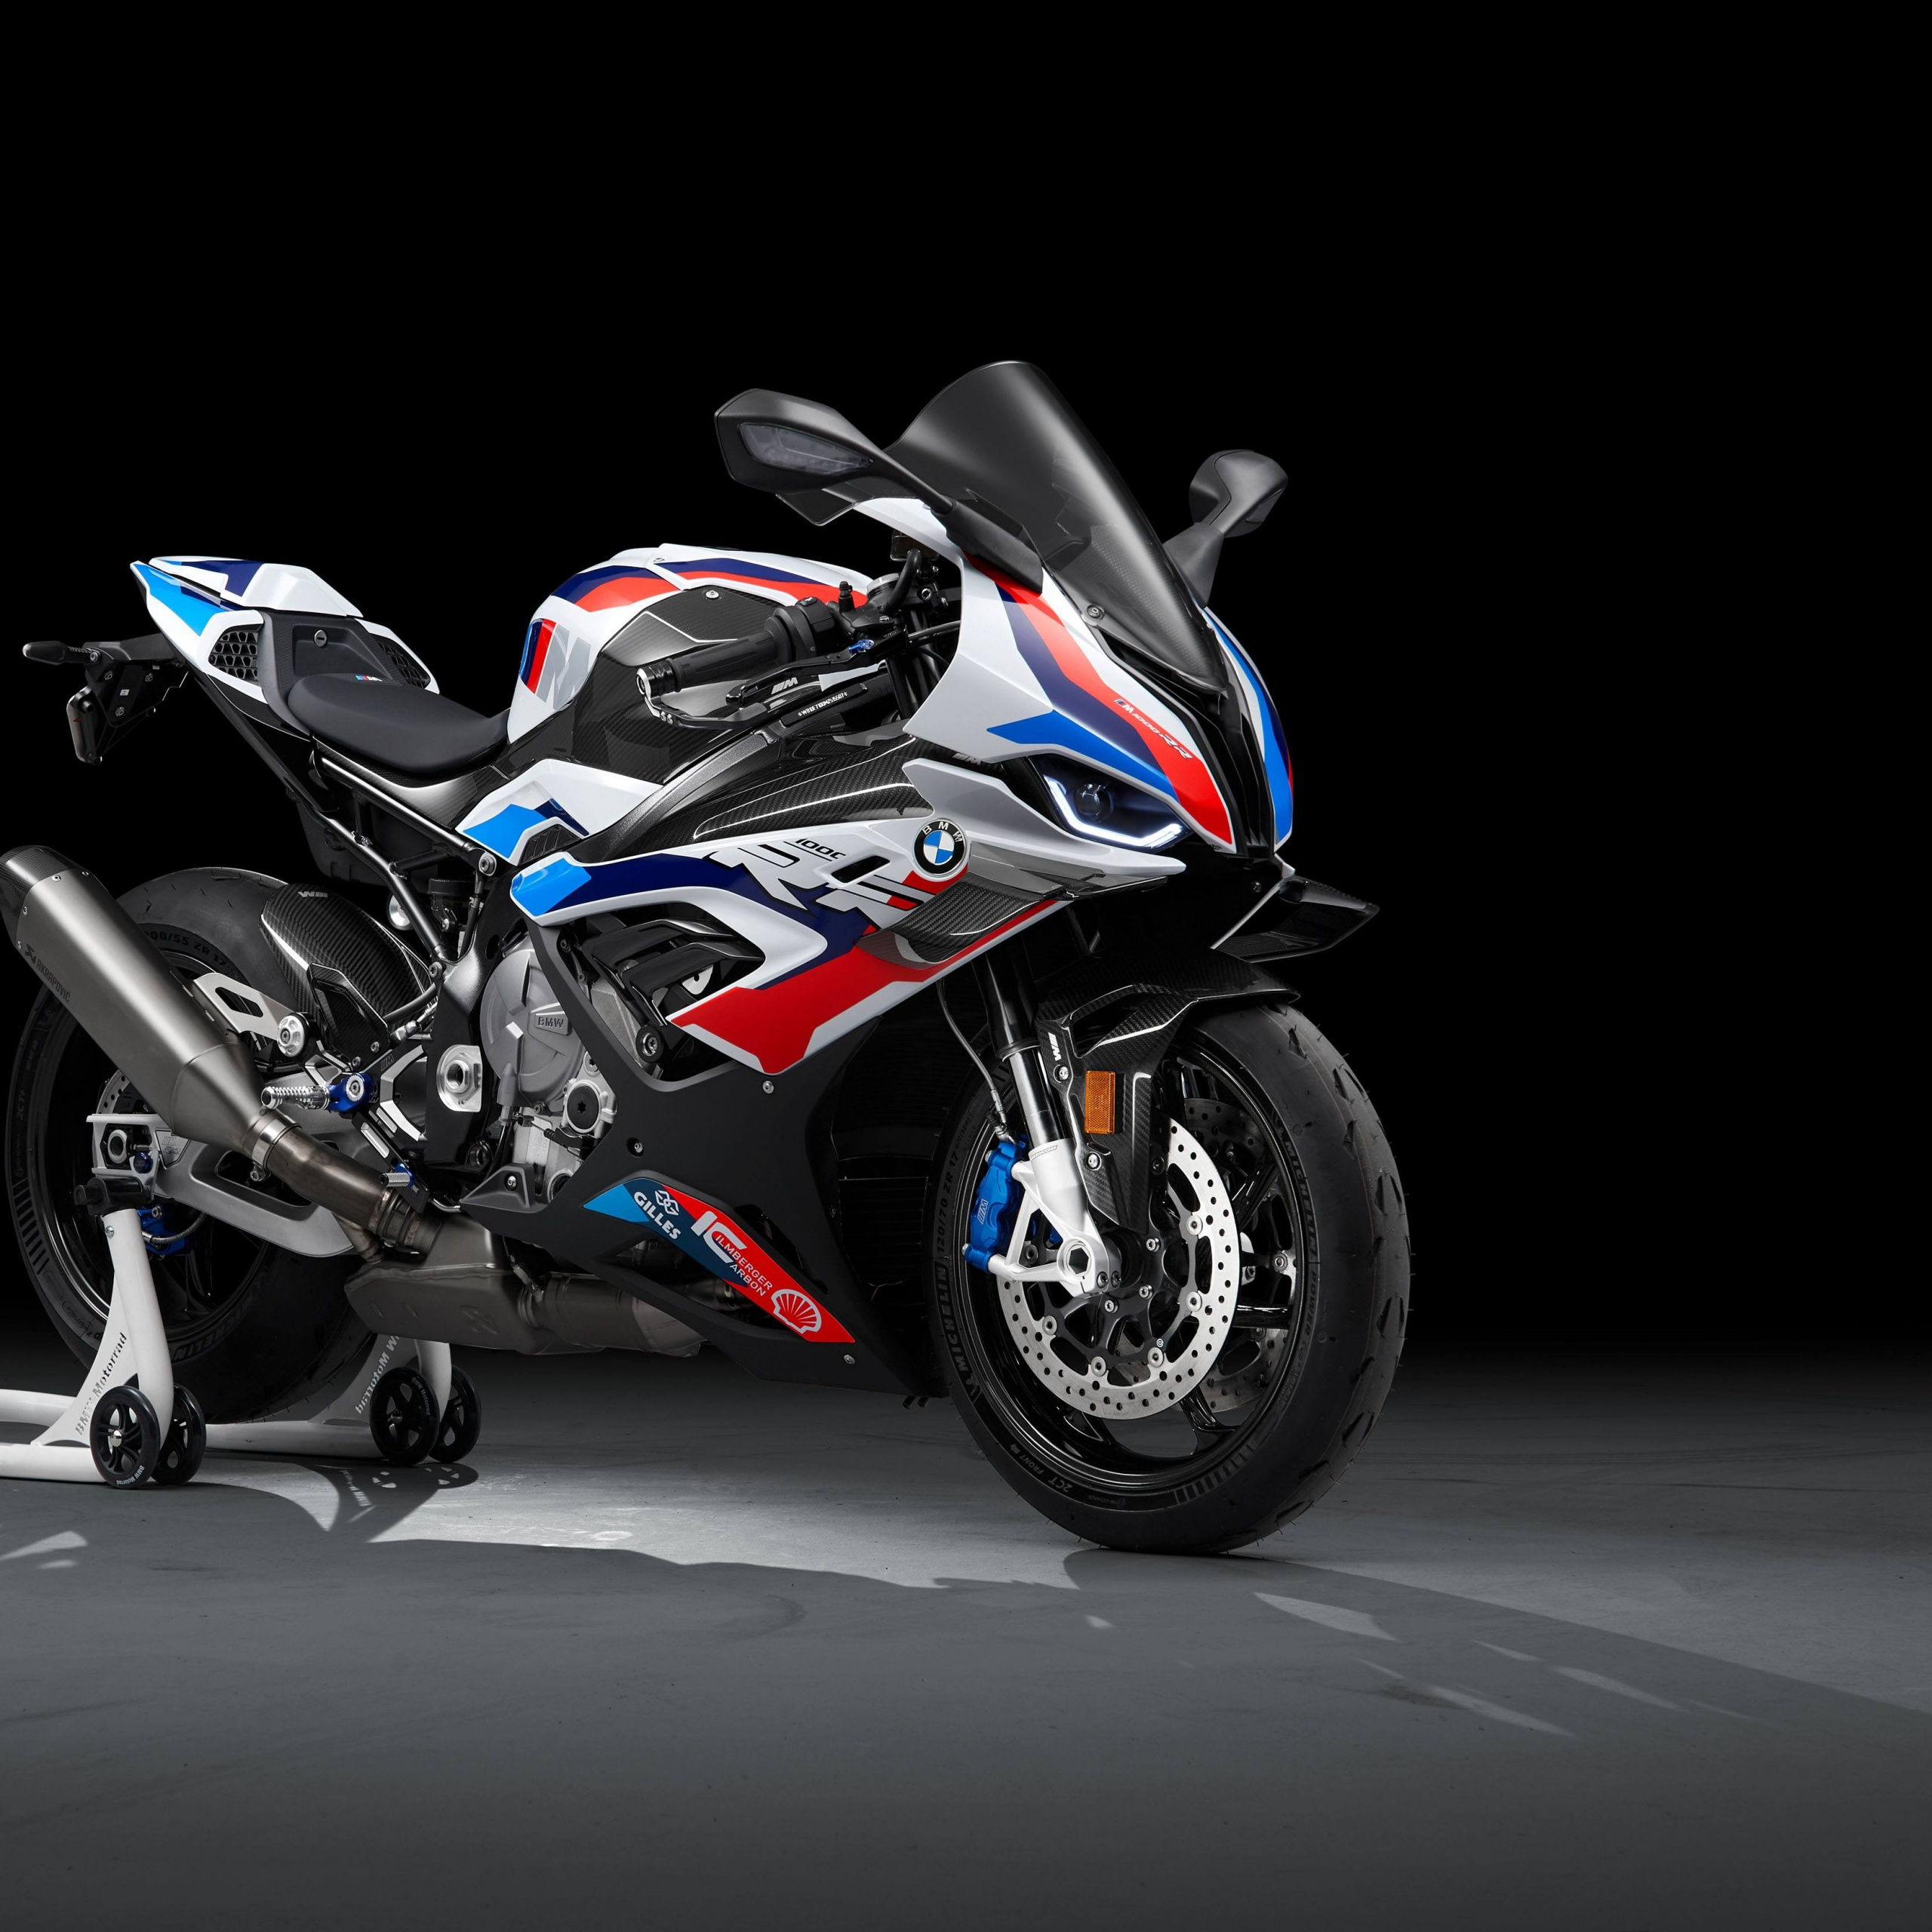 Bmw M 1000 Rr 4k Wallpaper Race Bikes Black Background 2021 5k Bikes 2743